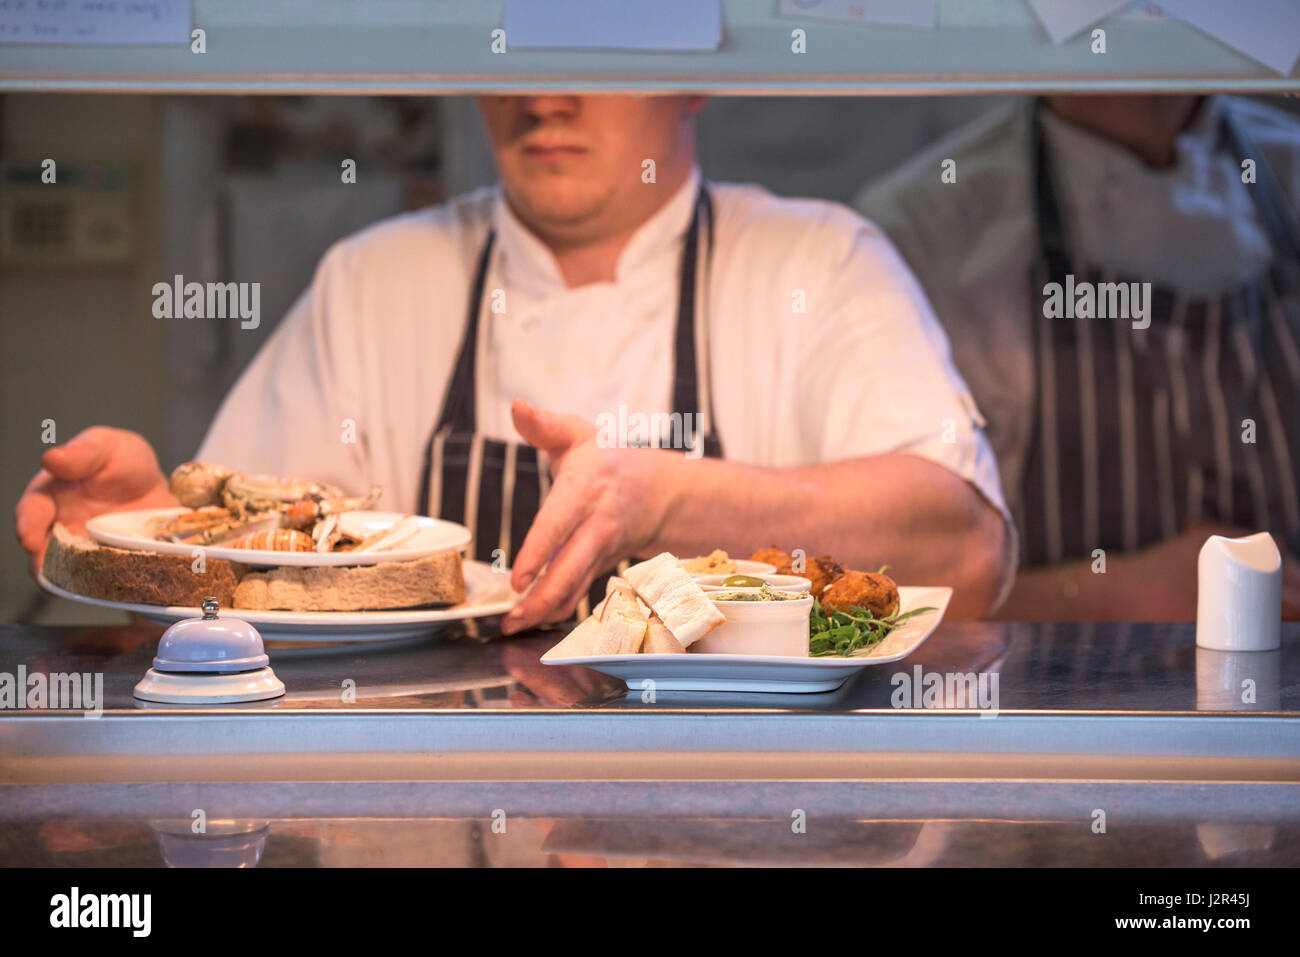 Restaurant Plates of food Serving hatch Food preparation Chef Meals Dining Food service industry Dishes - Stock Image